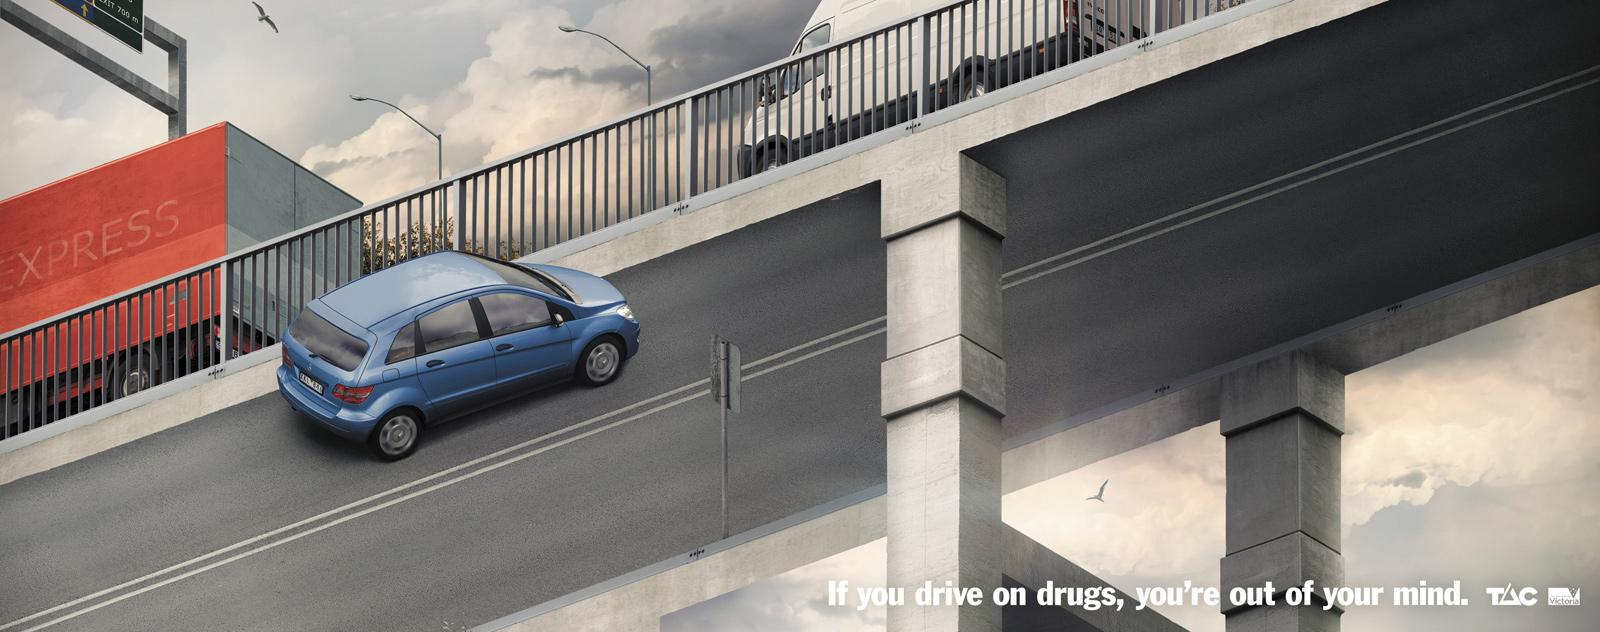 TAC_Confusion_Overpass_ibelieveinadv.jpg (JPEG Image, 1600 × 632 pixels) - Scaled (89%)